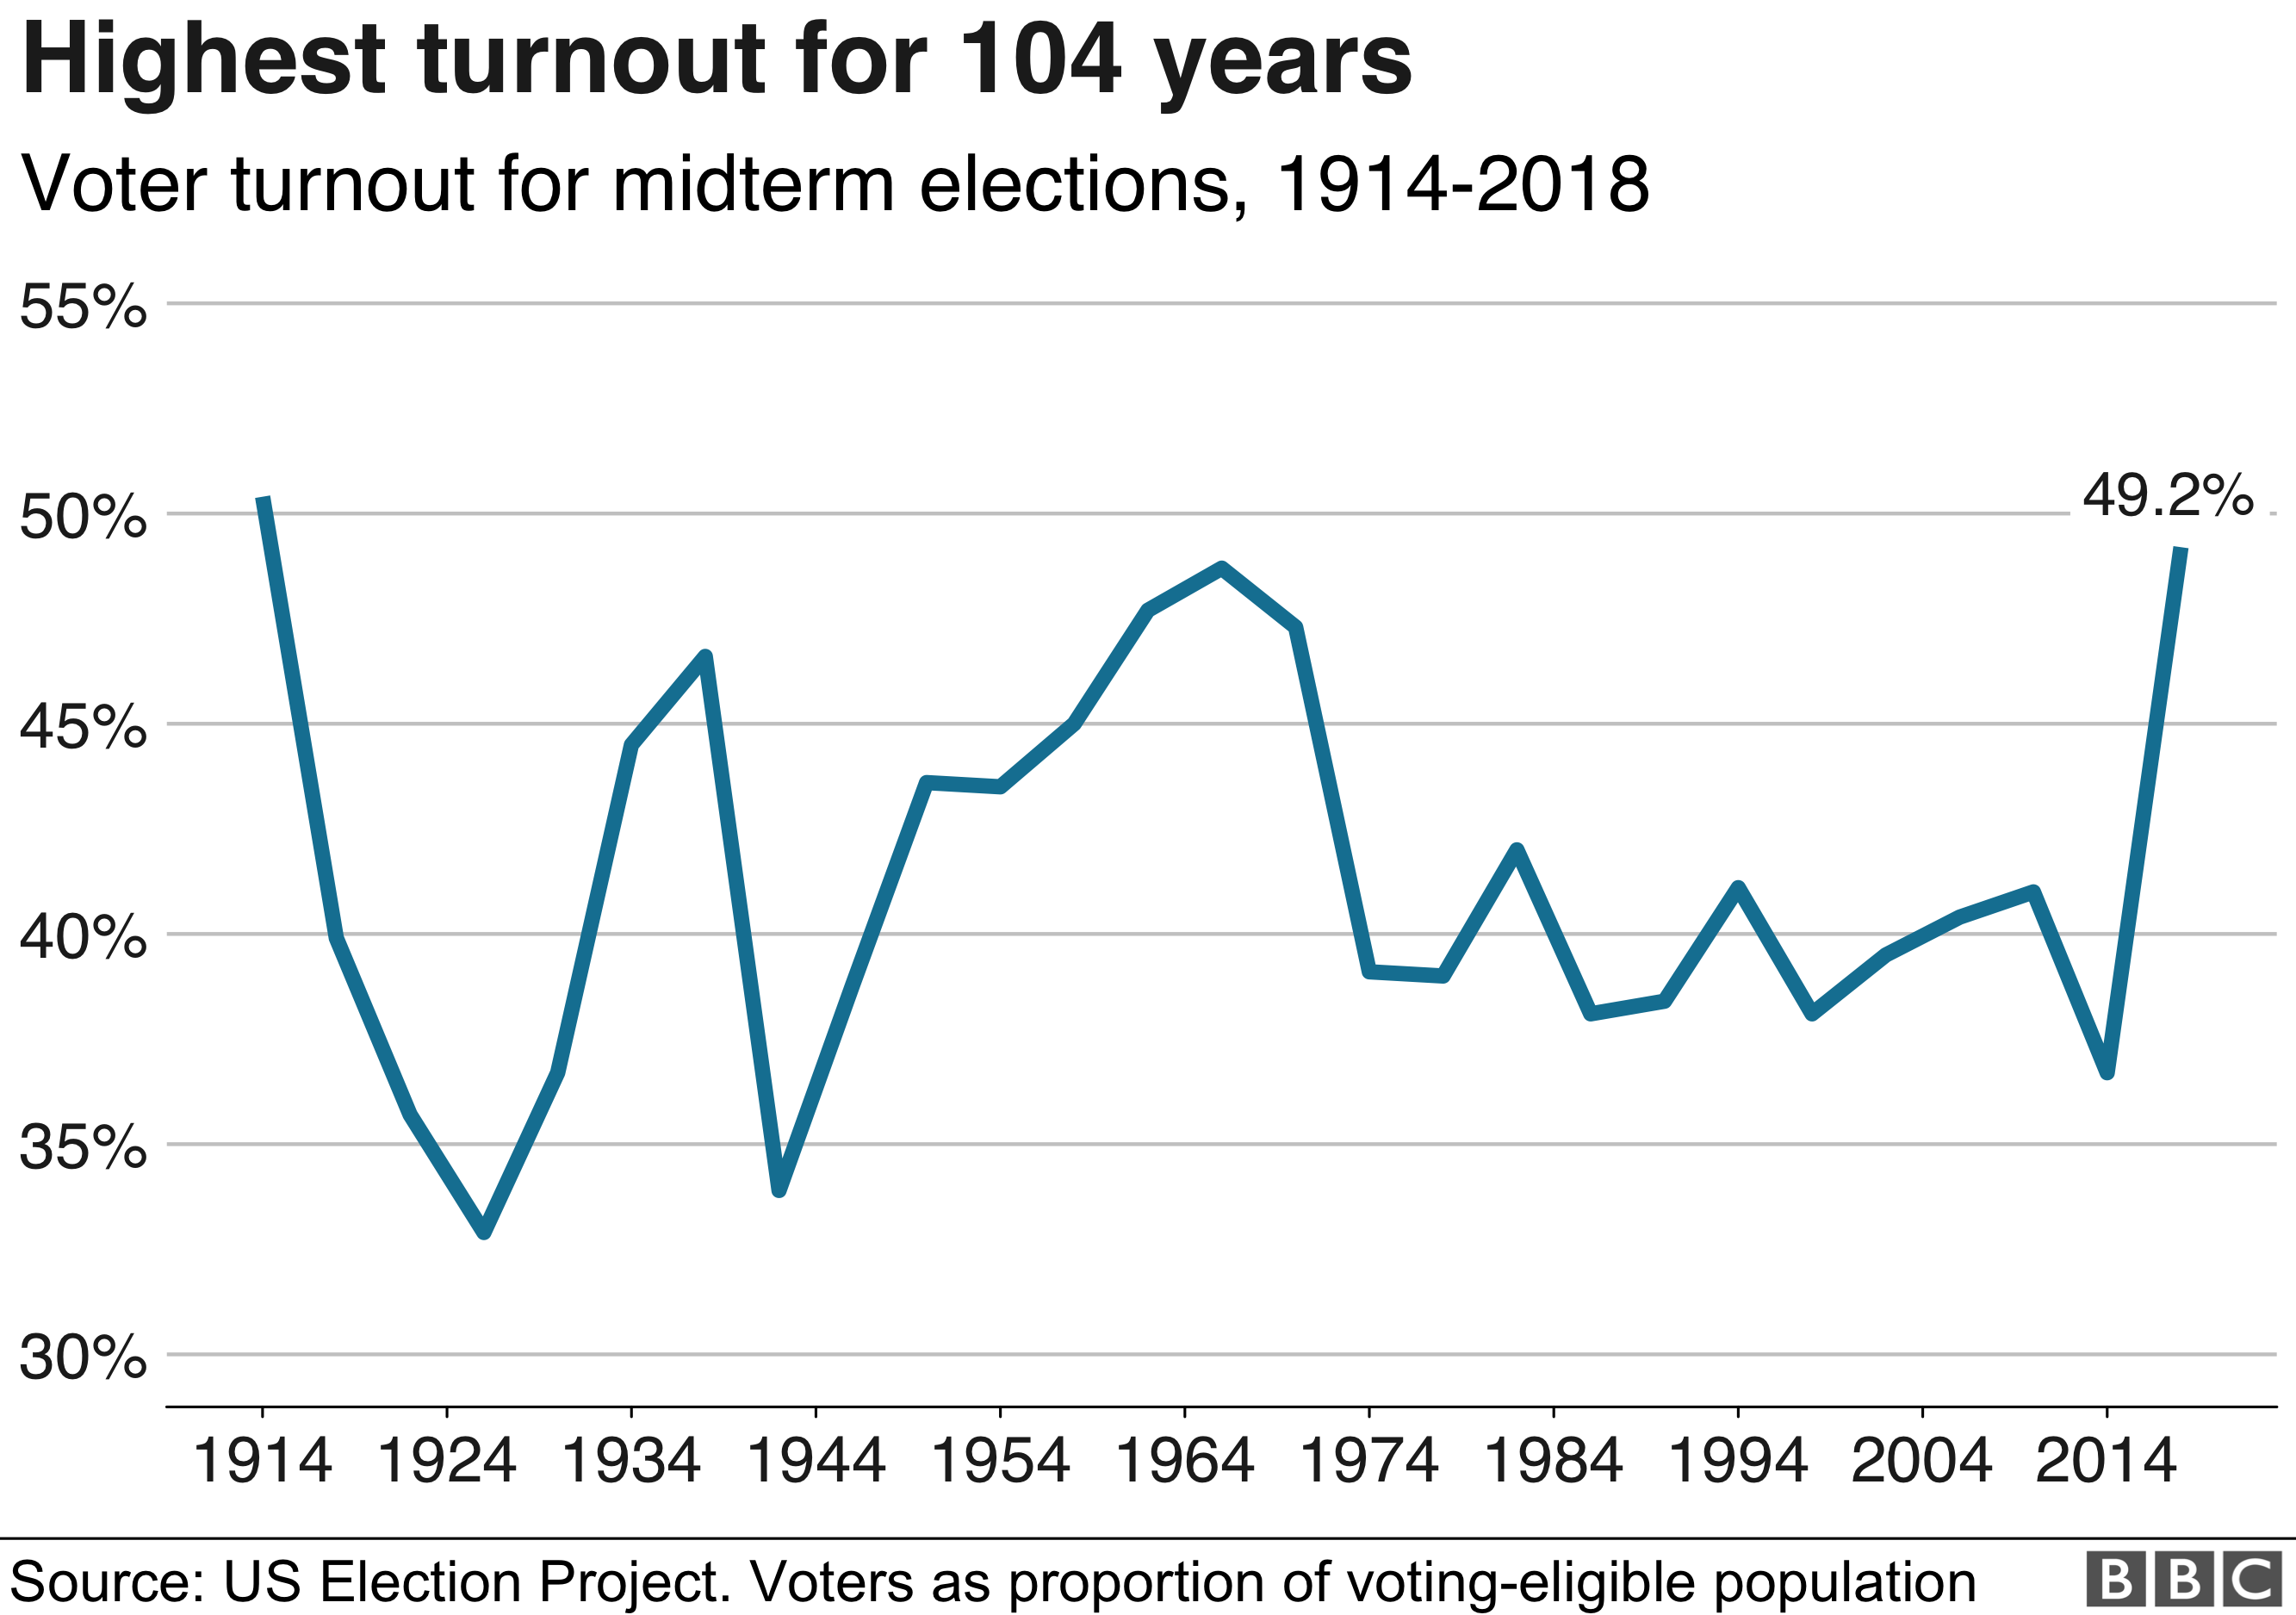 US mid-term election set record voter turnout